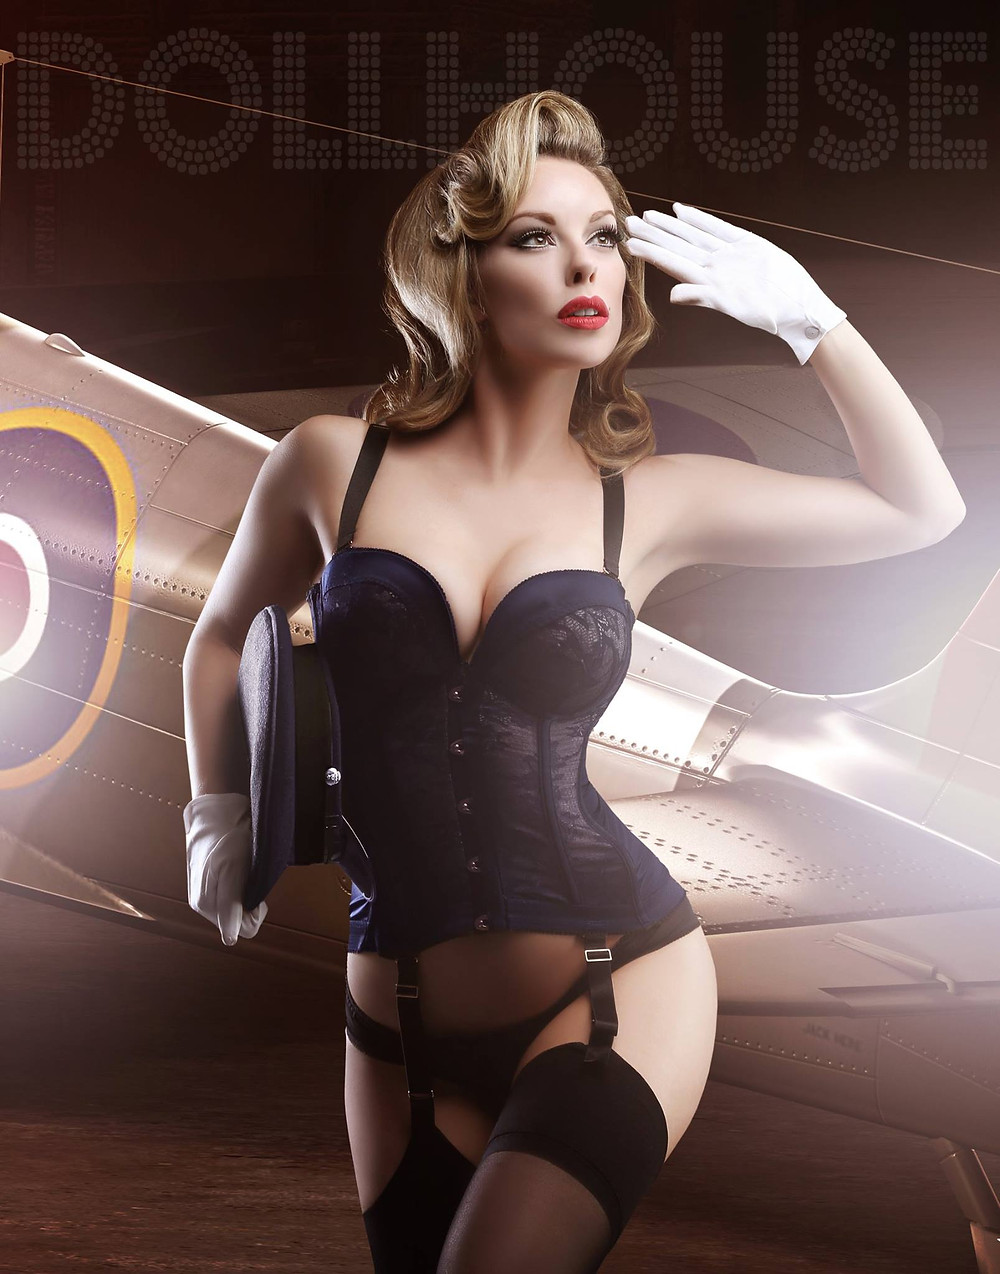 Military Pin-up by Dollhouse Photography - Award Winning Pinup Photographer. Model Heather Valentine.